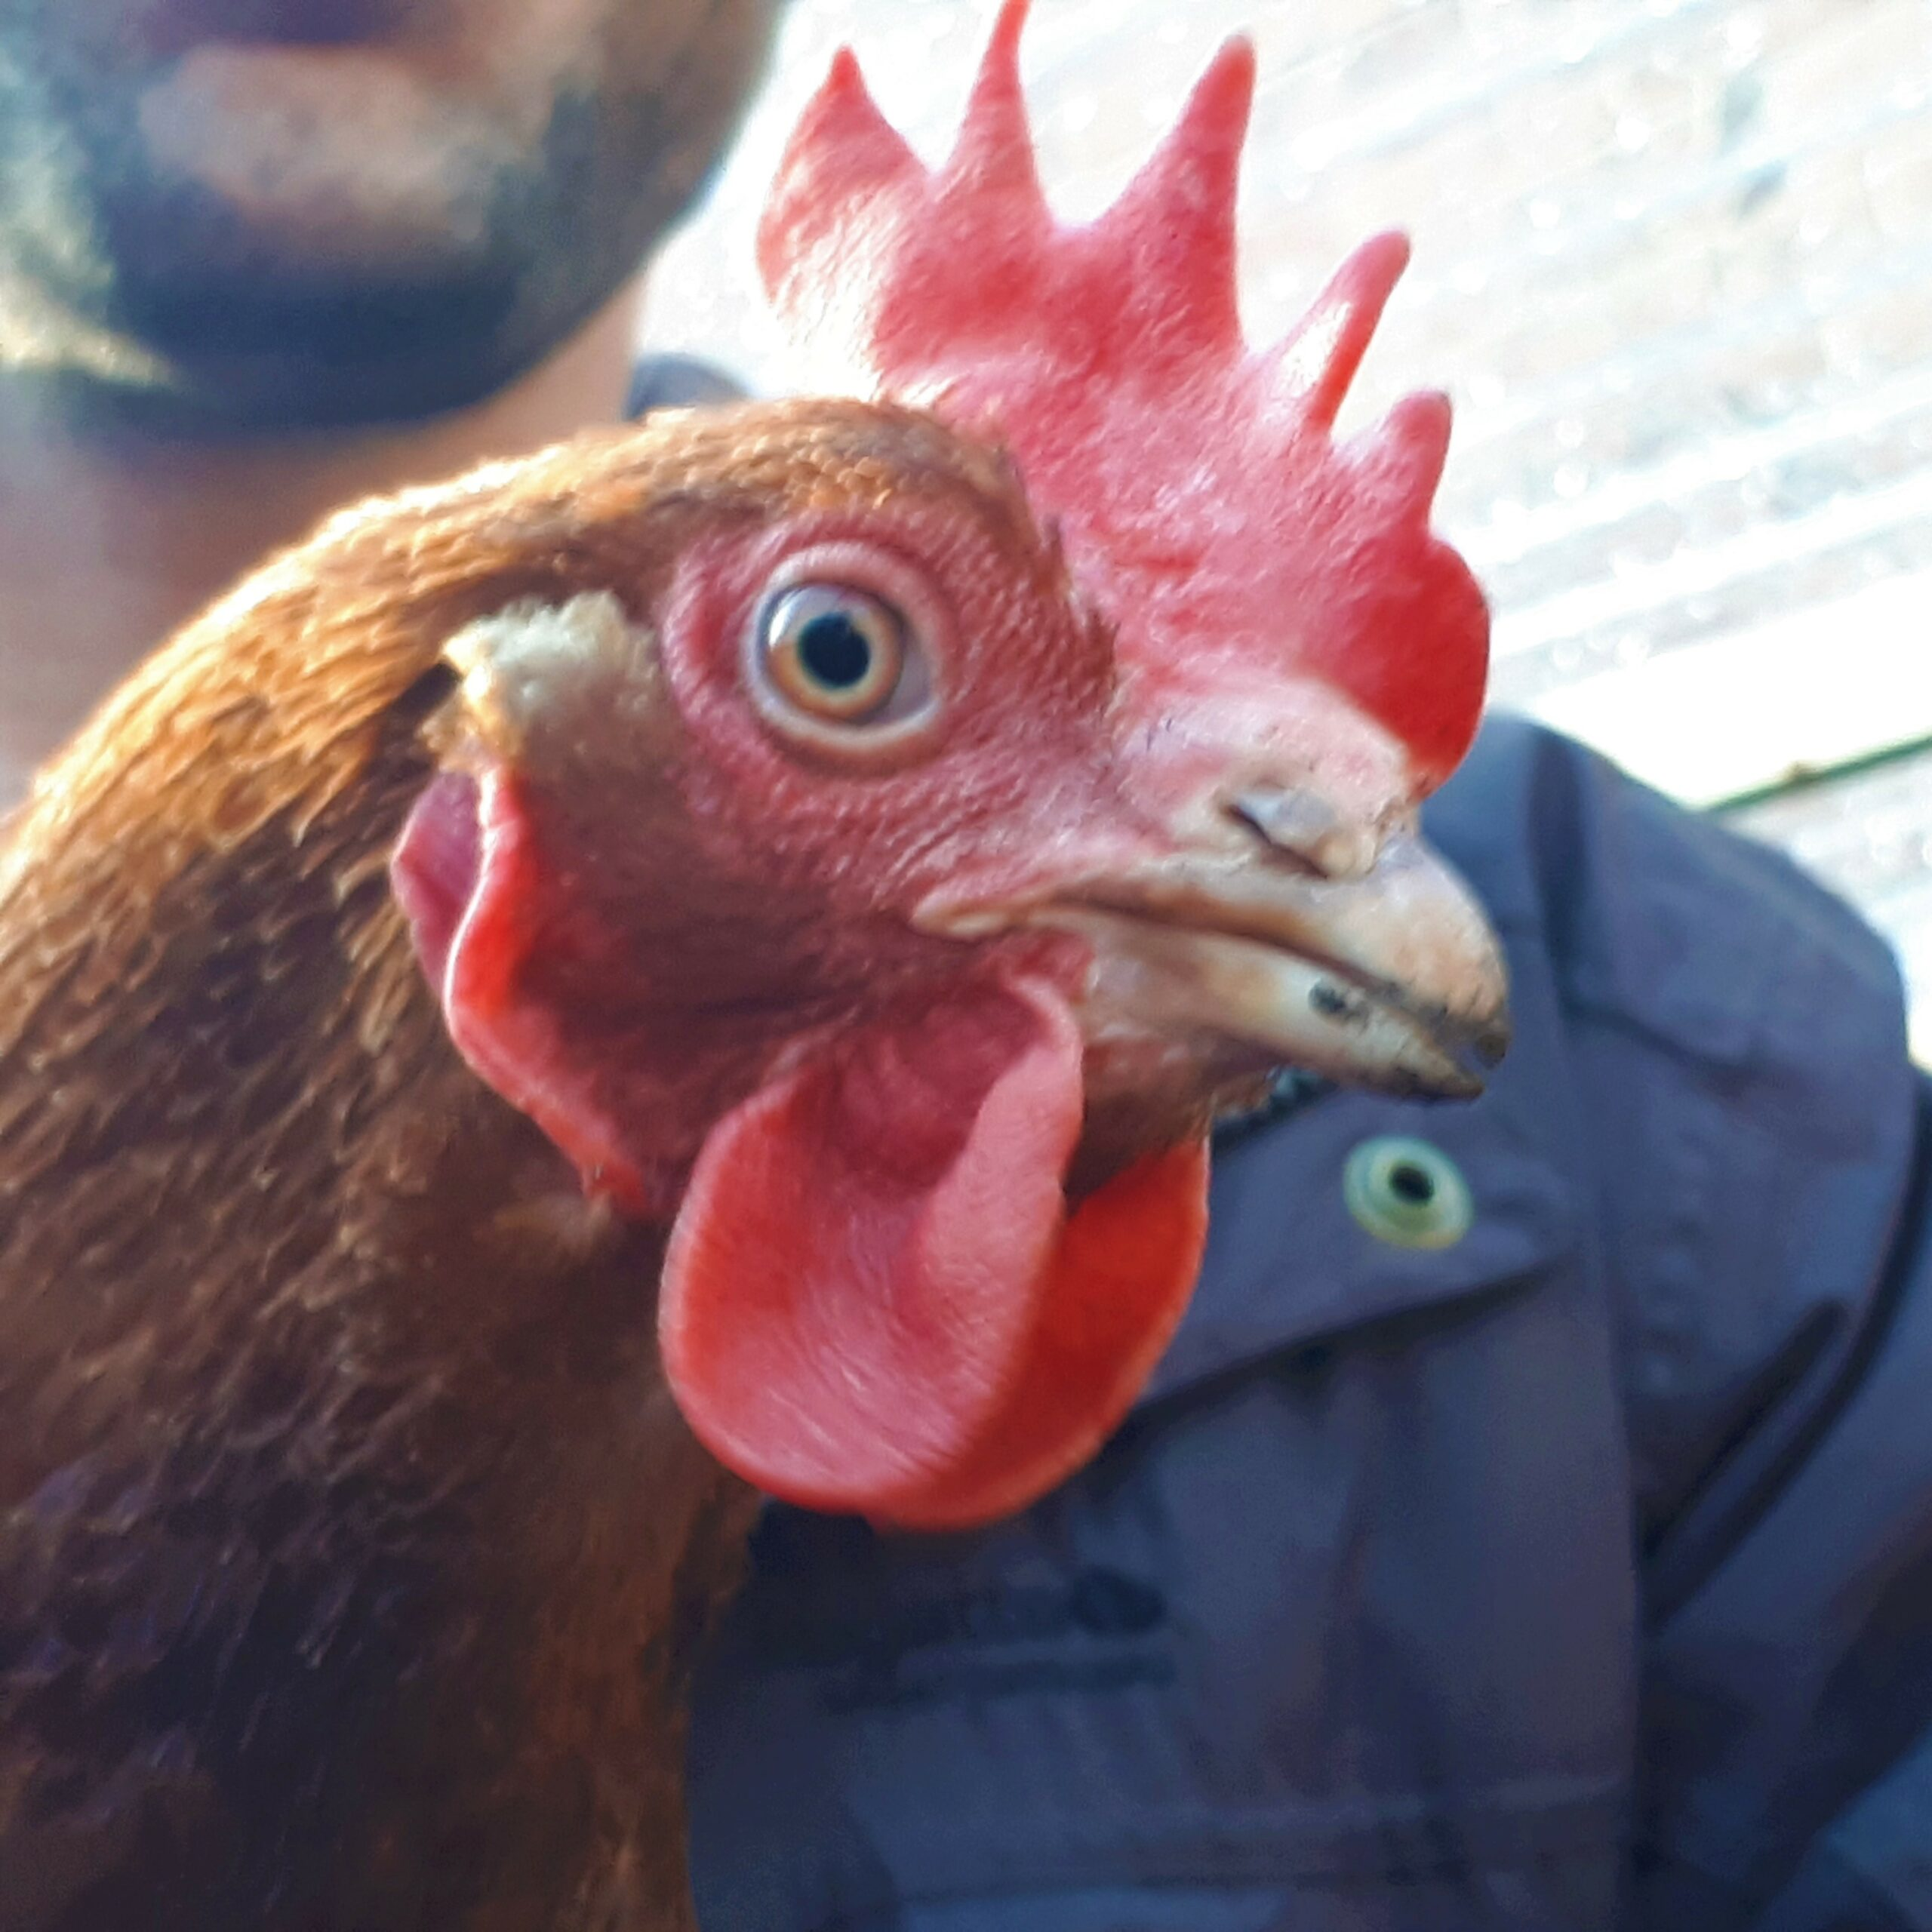 18. Chickens with character